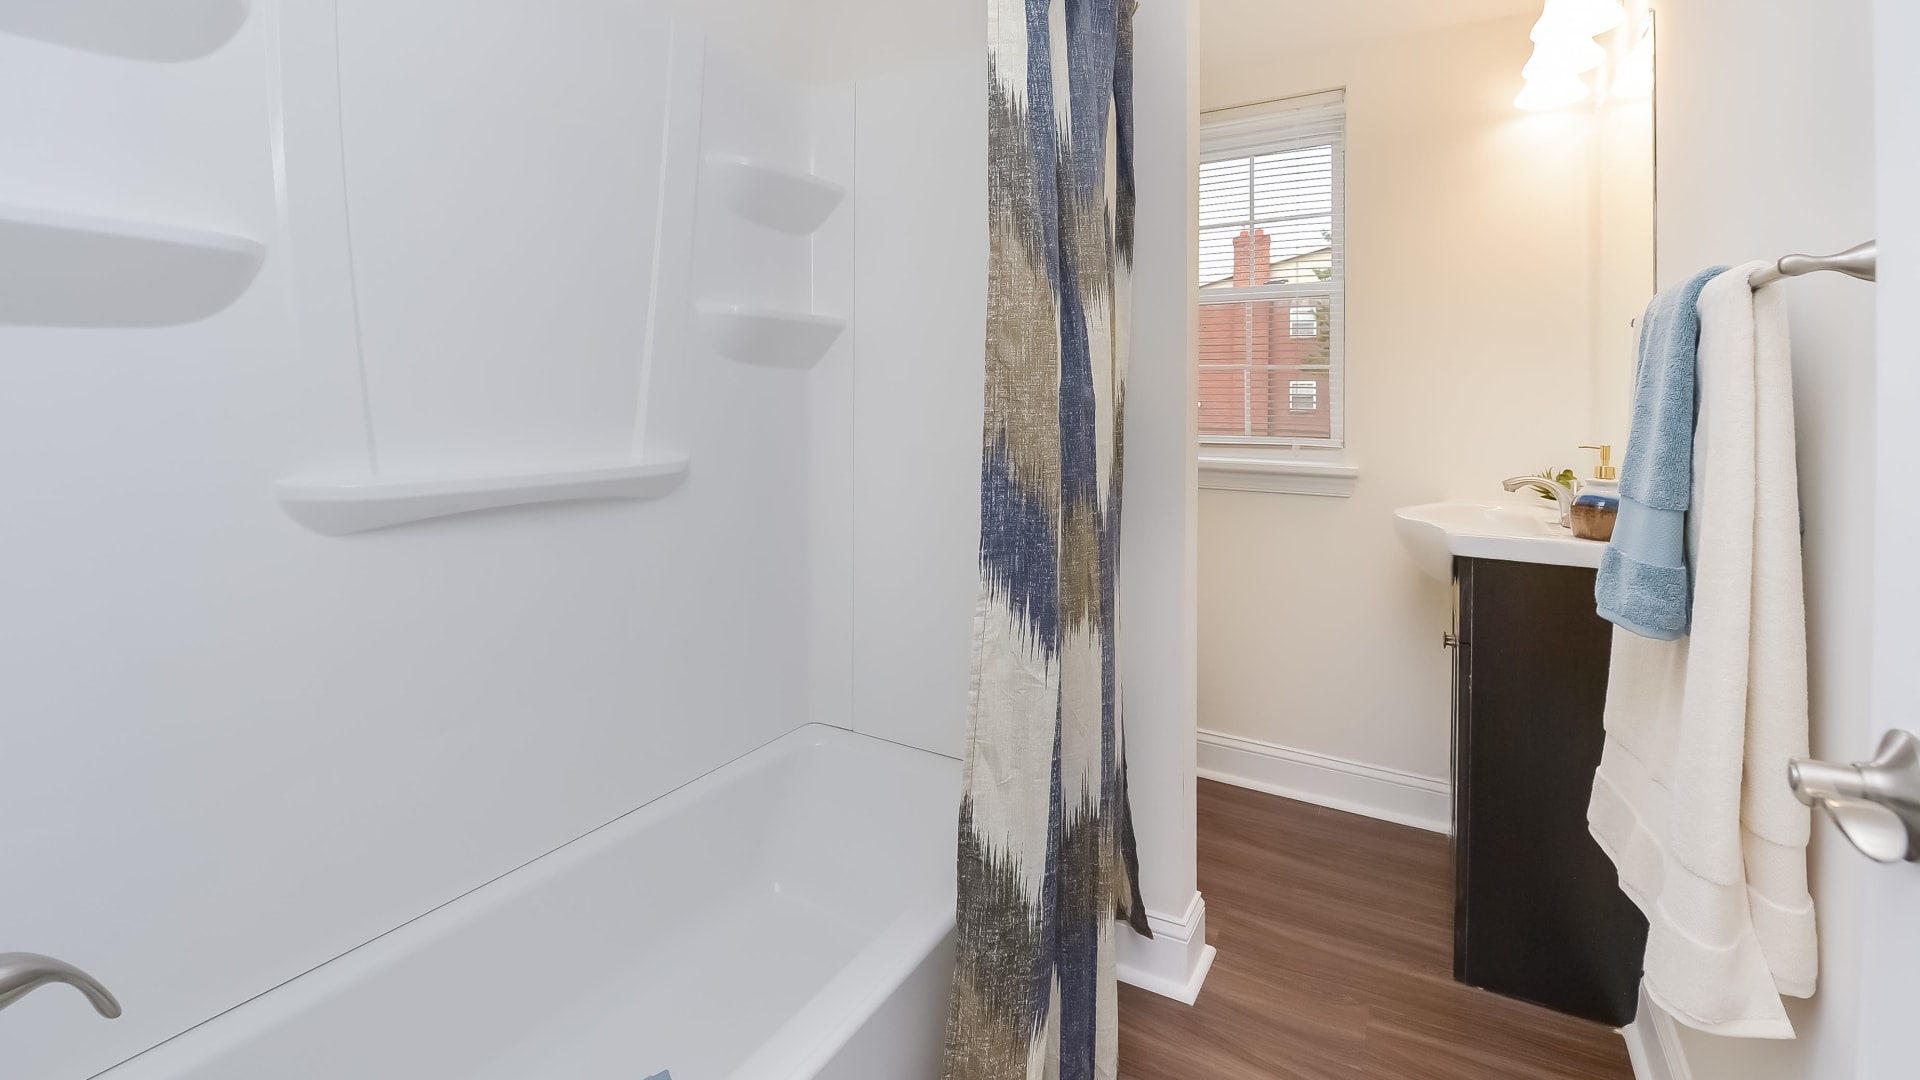 Bathroom at Kingswood Apartments & Townhomes in King of Prussia, Pennsylvania